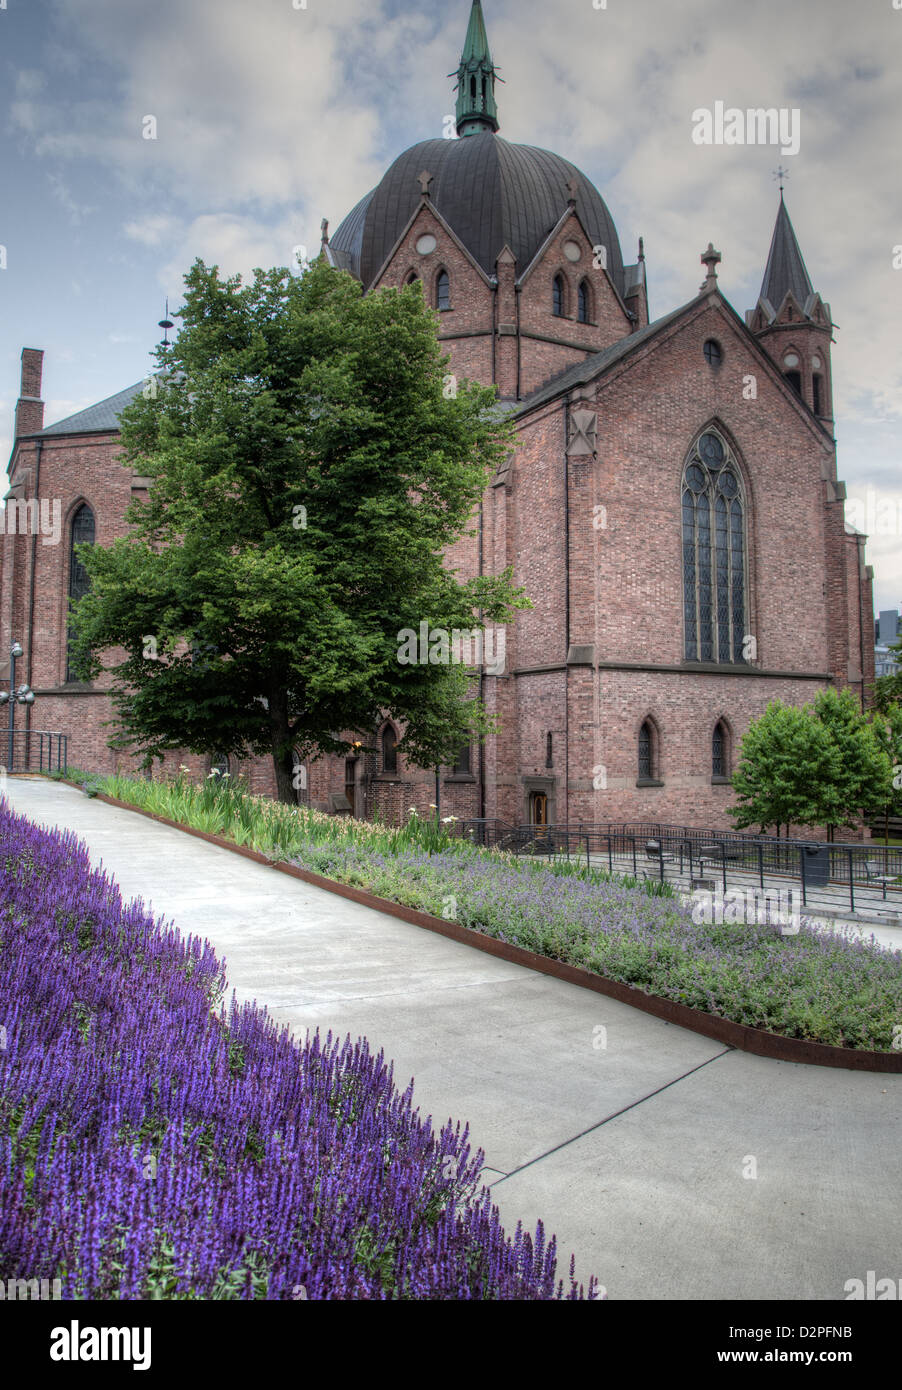 A Church in Oslo Norway - Stock Image